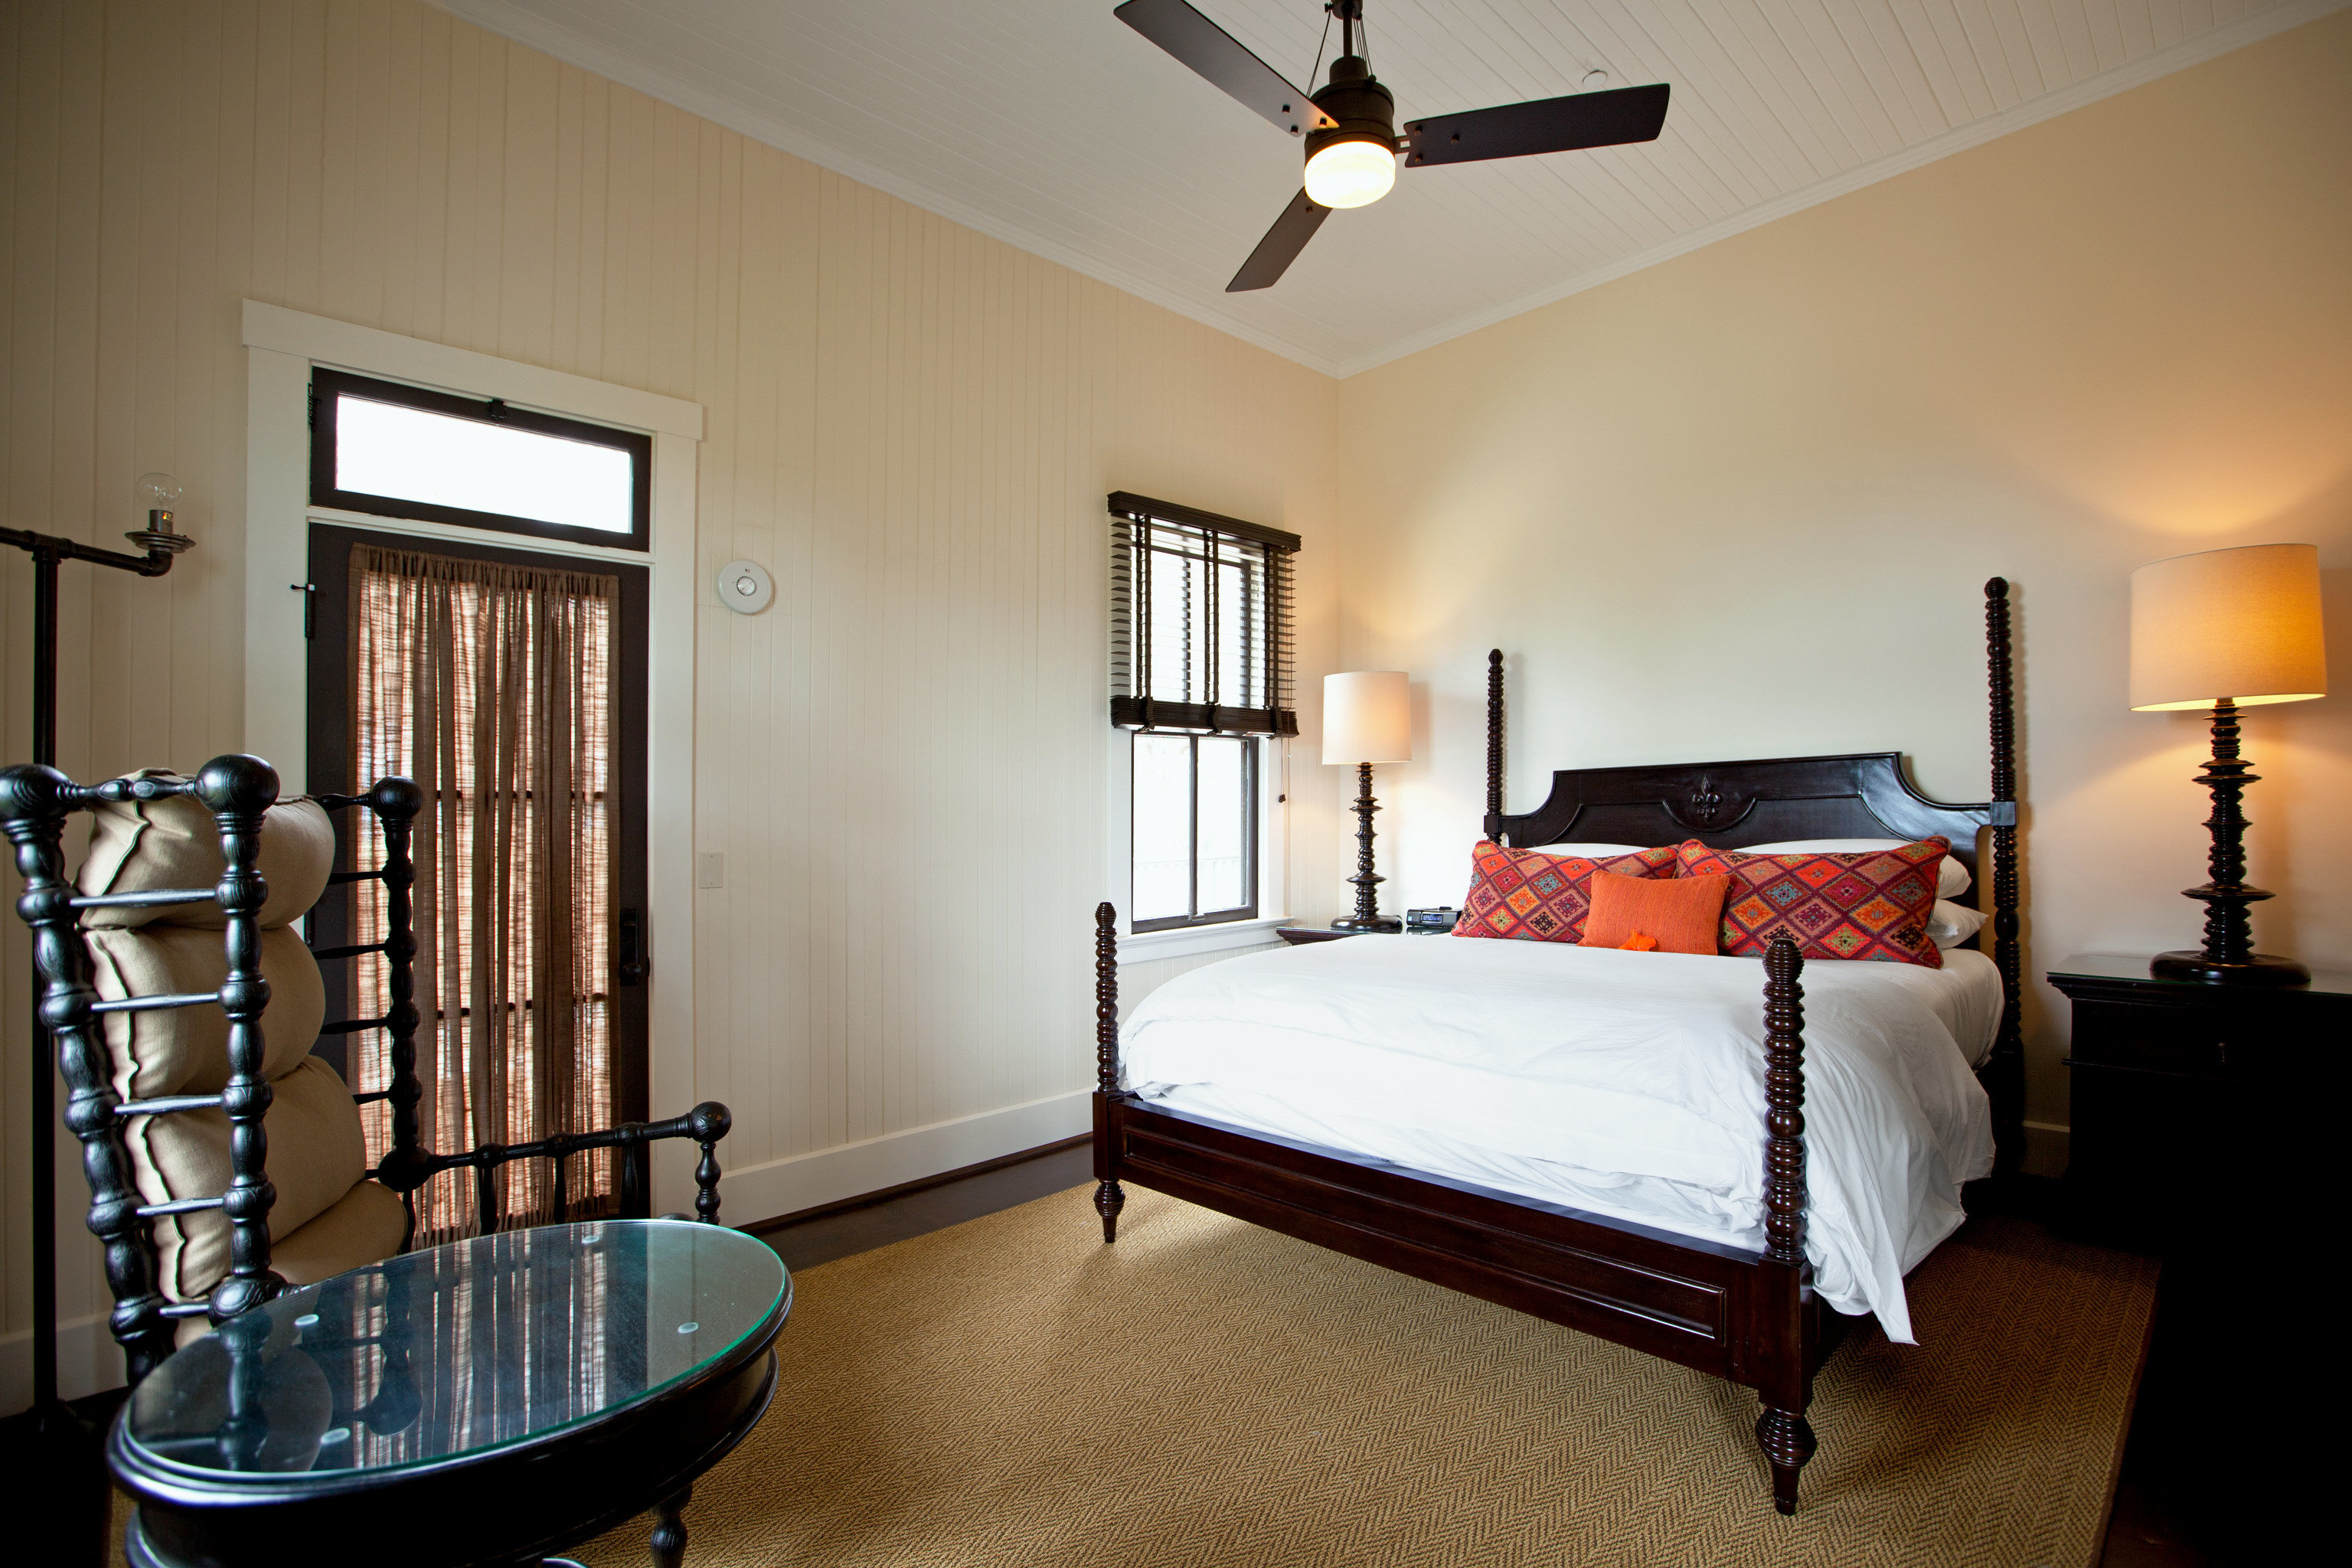 Bedroom Eco Hotels Modern Romance Suite Trip Ideas property home cottage living room lamp